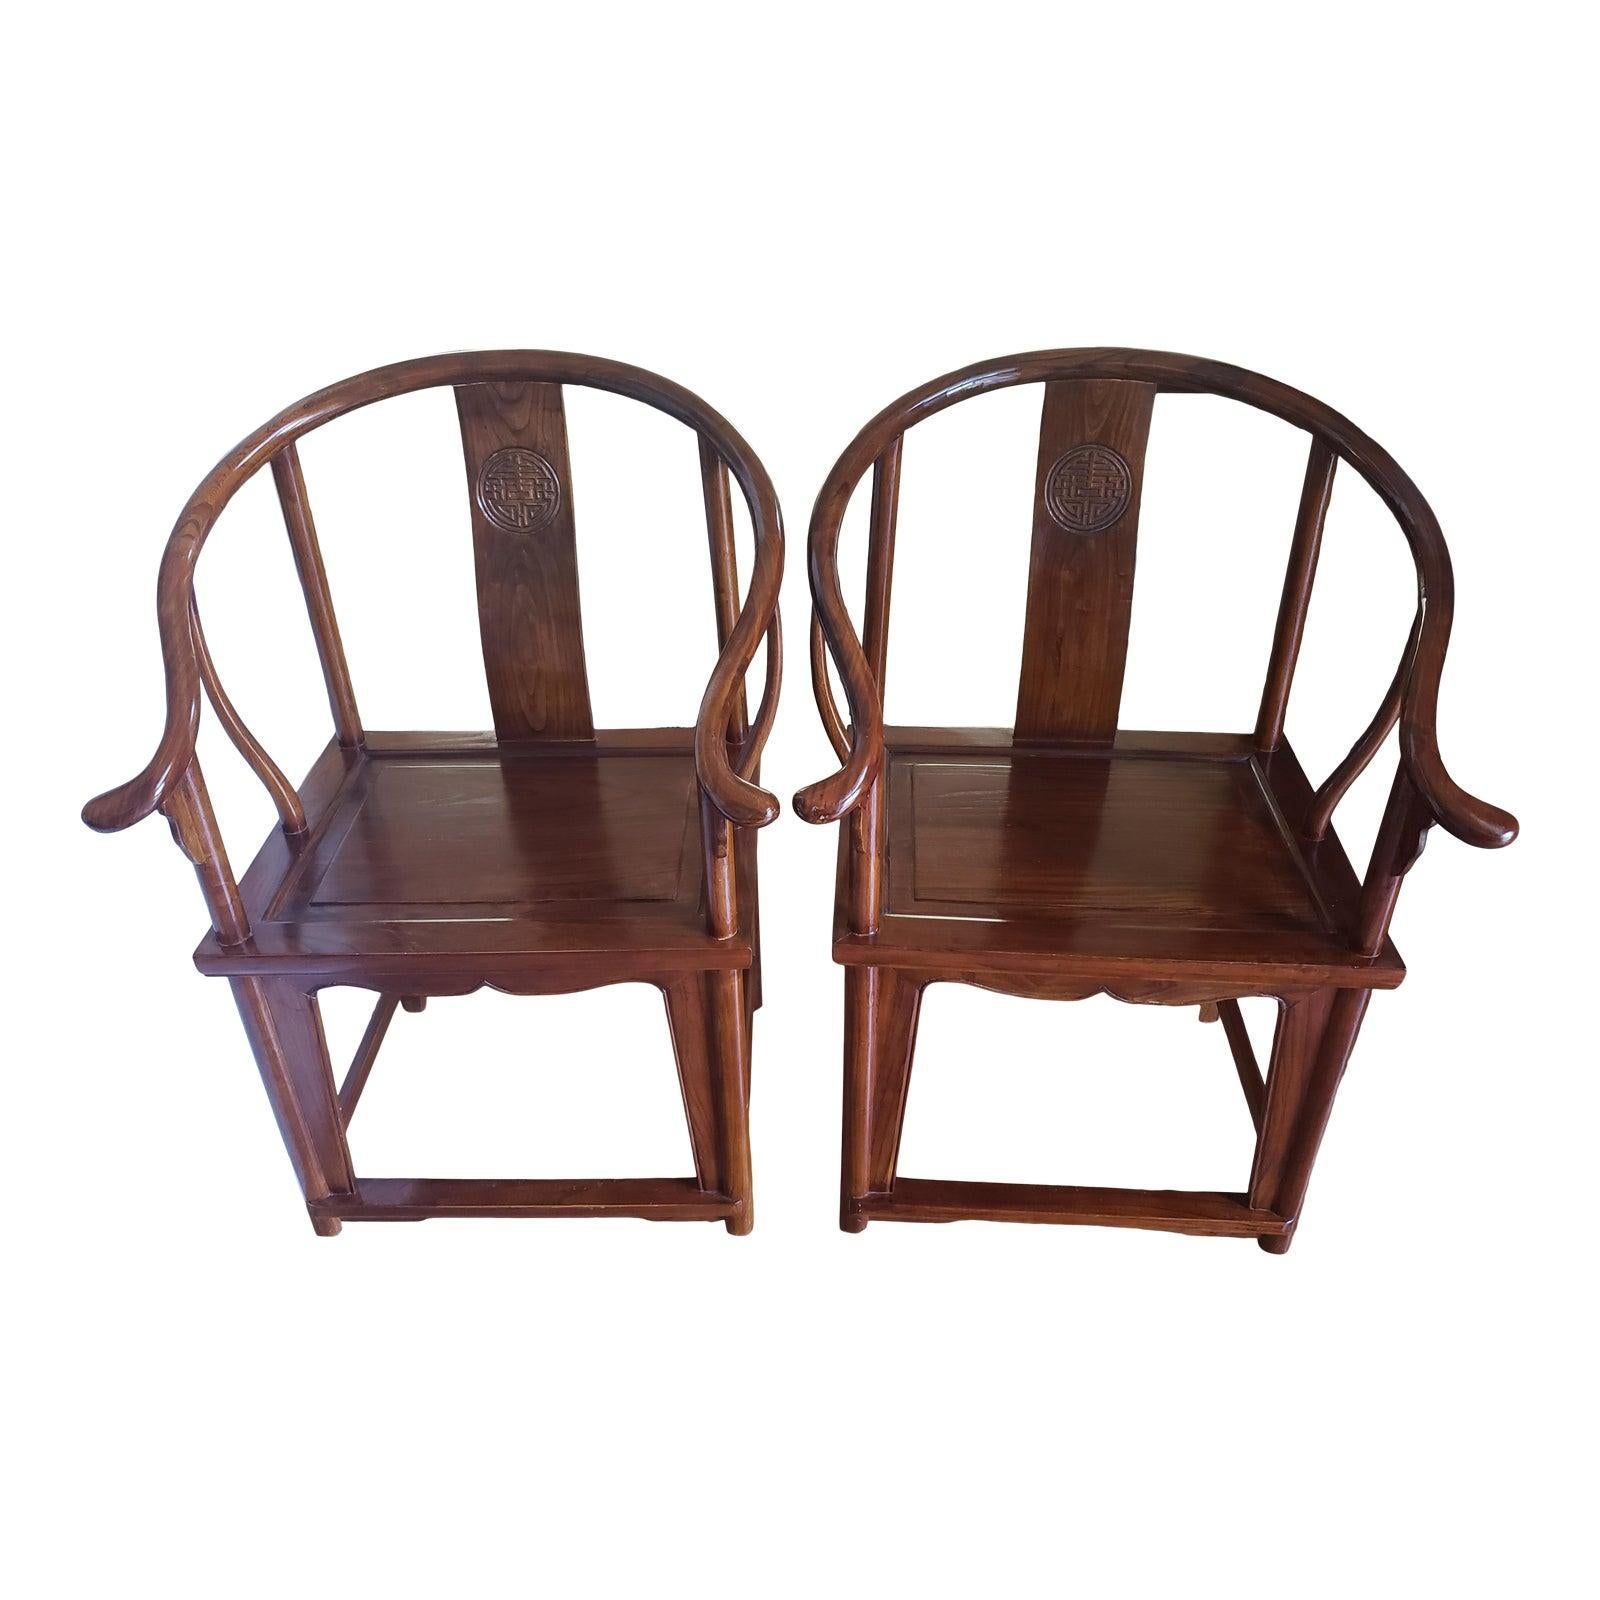 1970s Ming Style Rosewood Horseshoe Chairs